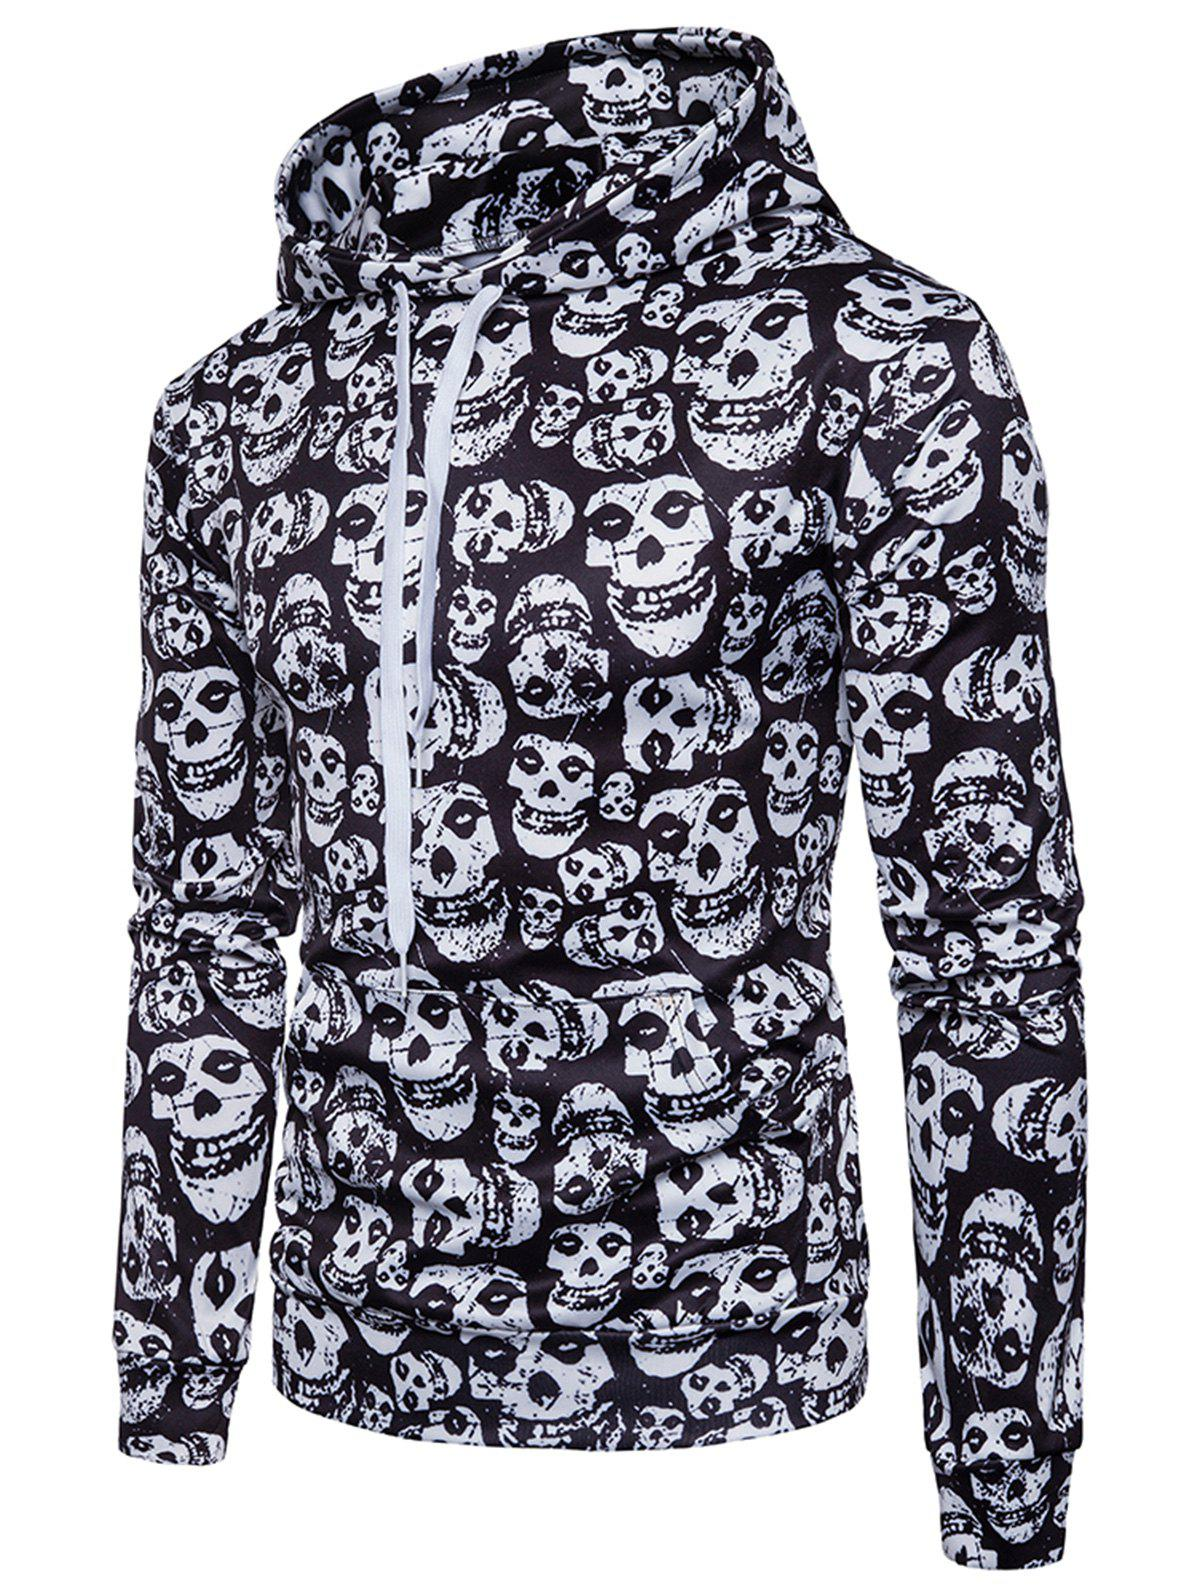 Kangaroo Pocket Skulls Print Hoodie - WHITE/BLACK 3XL